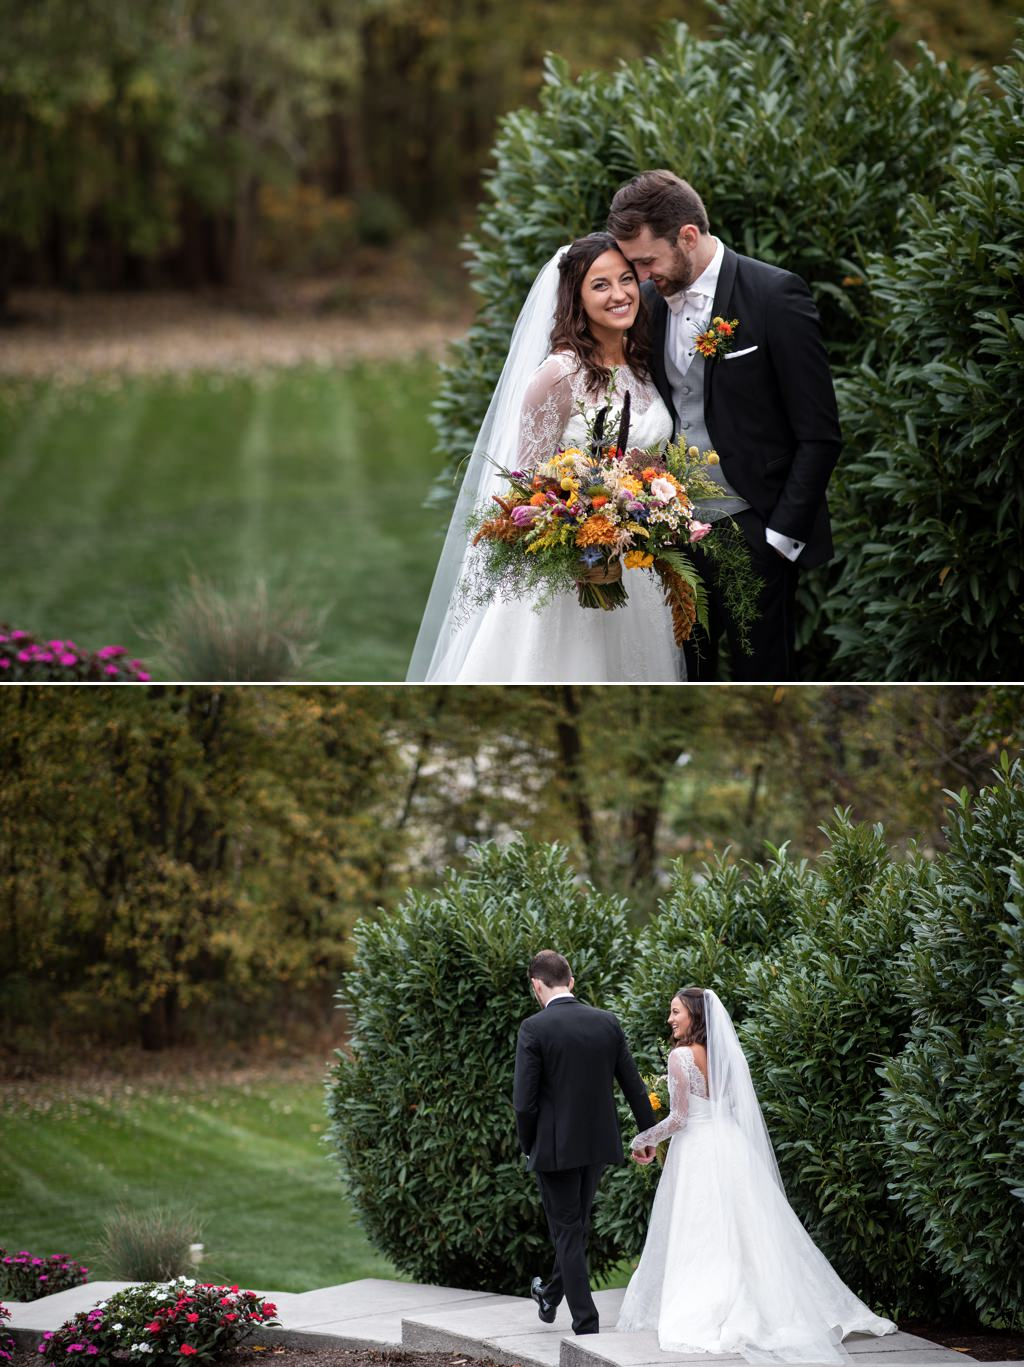 A bride and groom walking down the steps after their wedding at historic acres of hershey pa